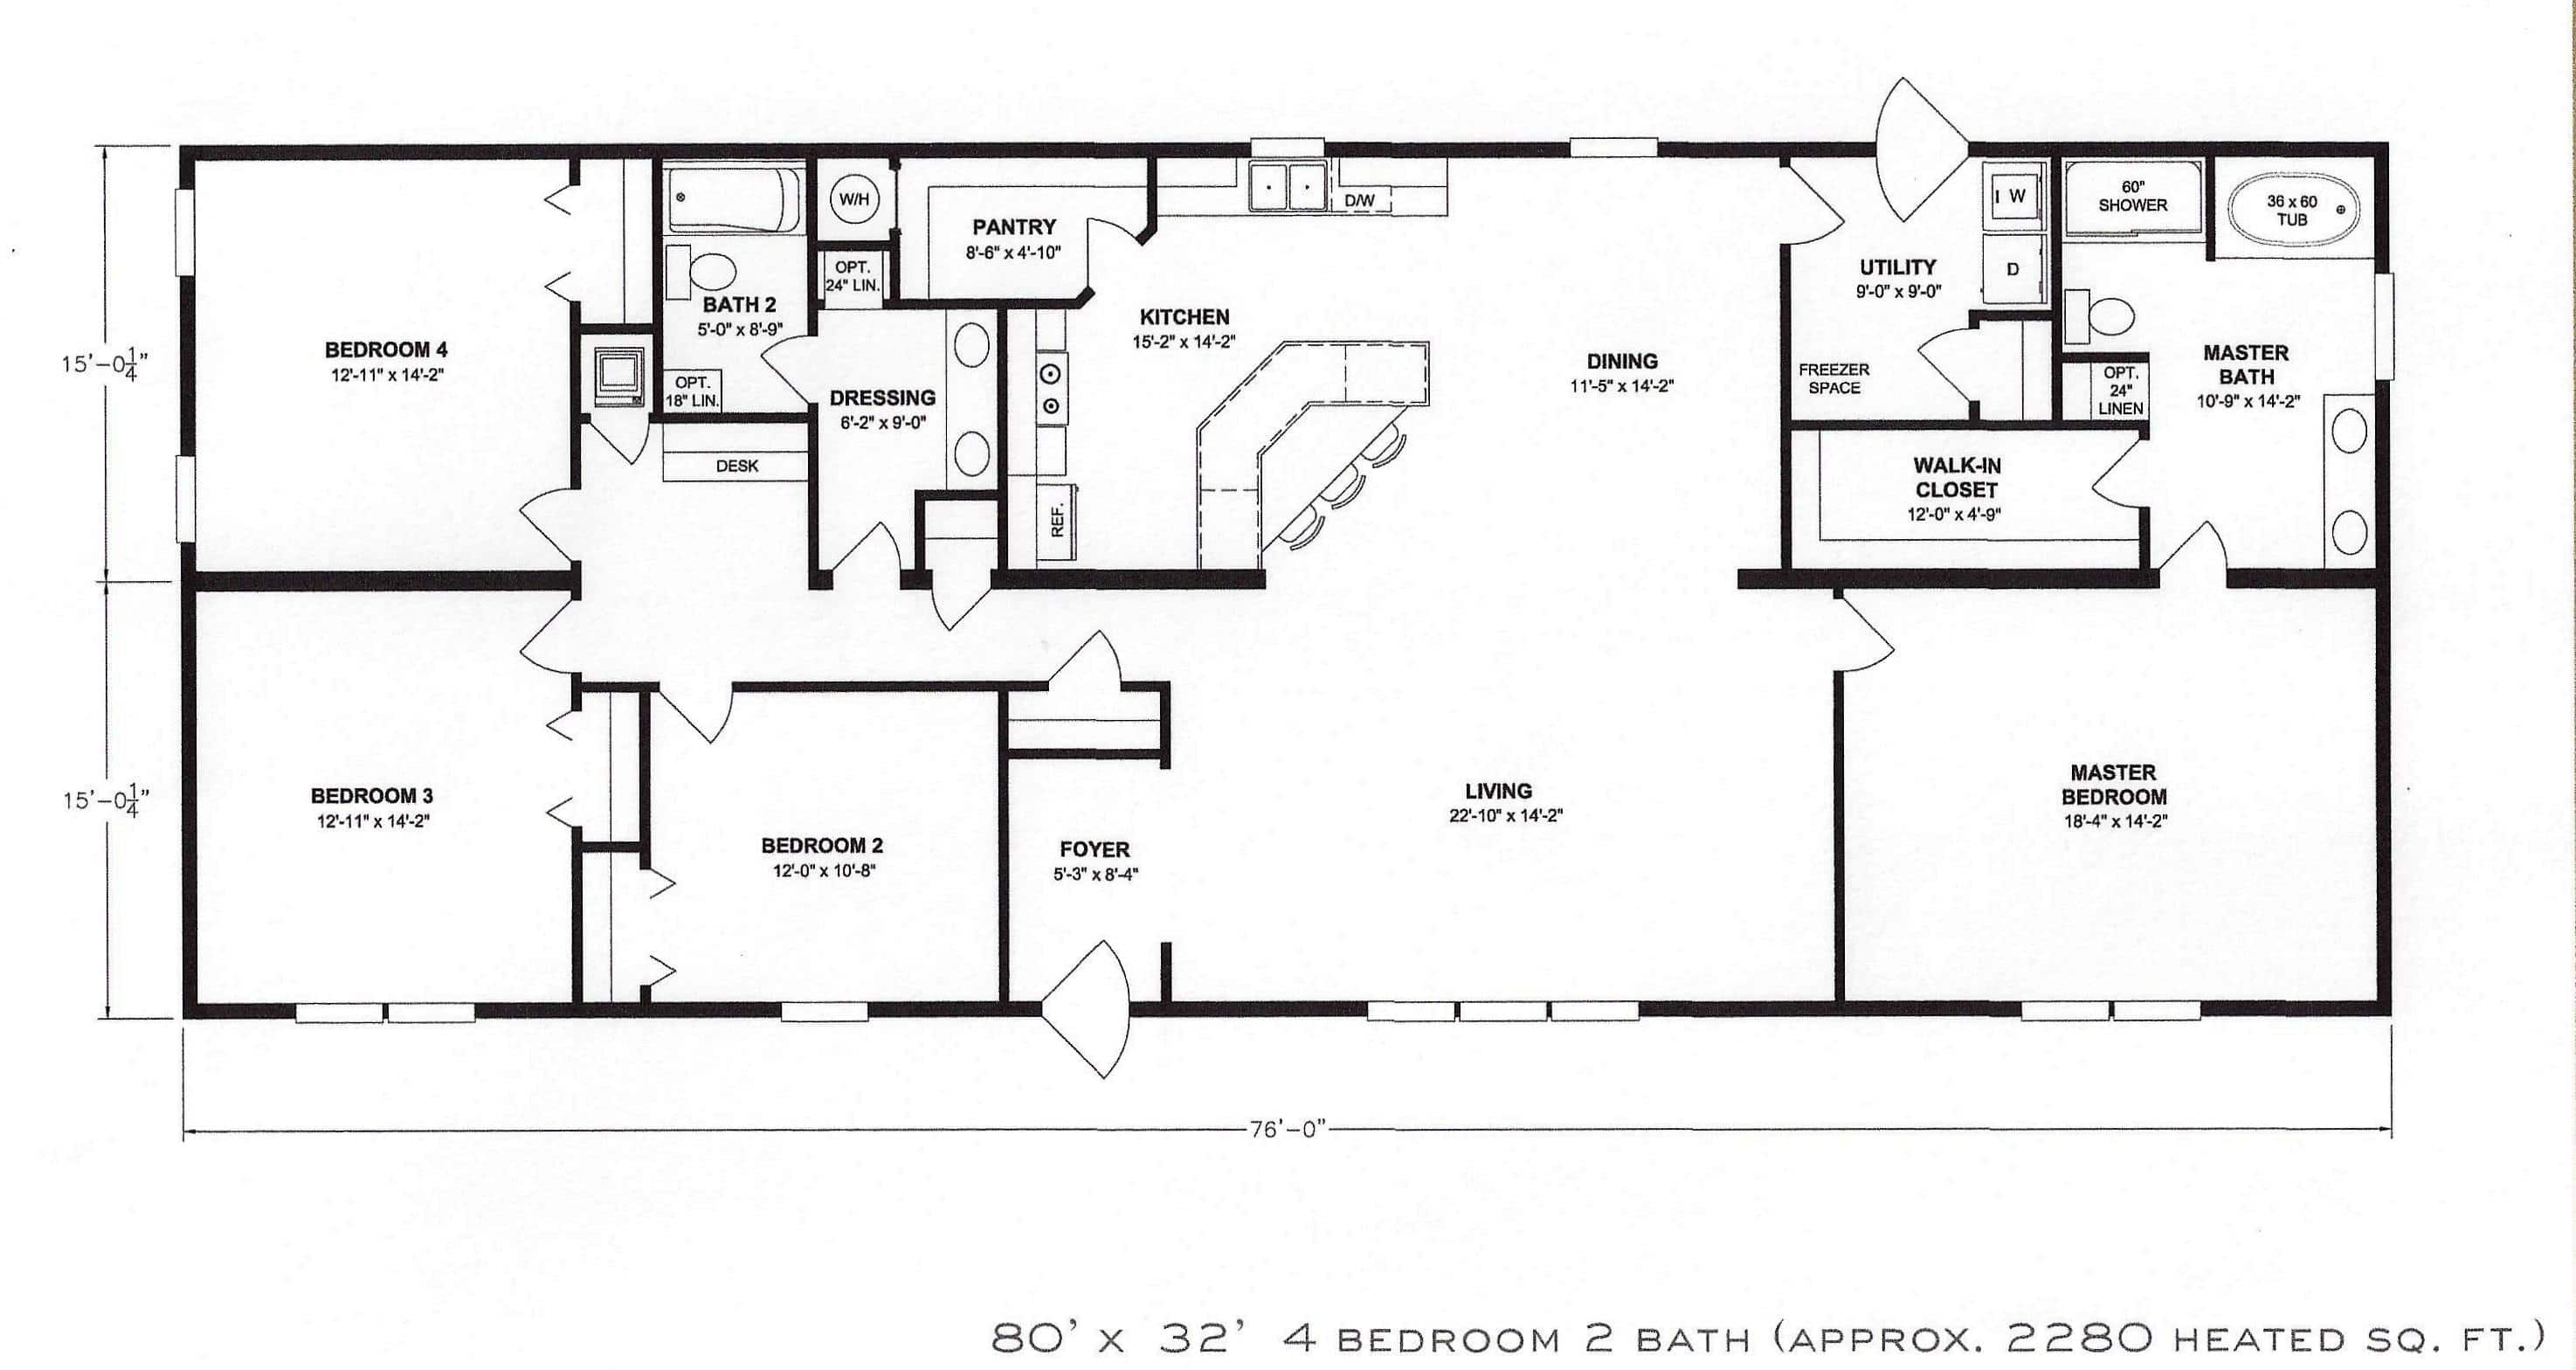 Bedroom Floor Plan Hawks Homes Manufactured - House Plans  #12